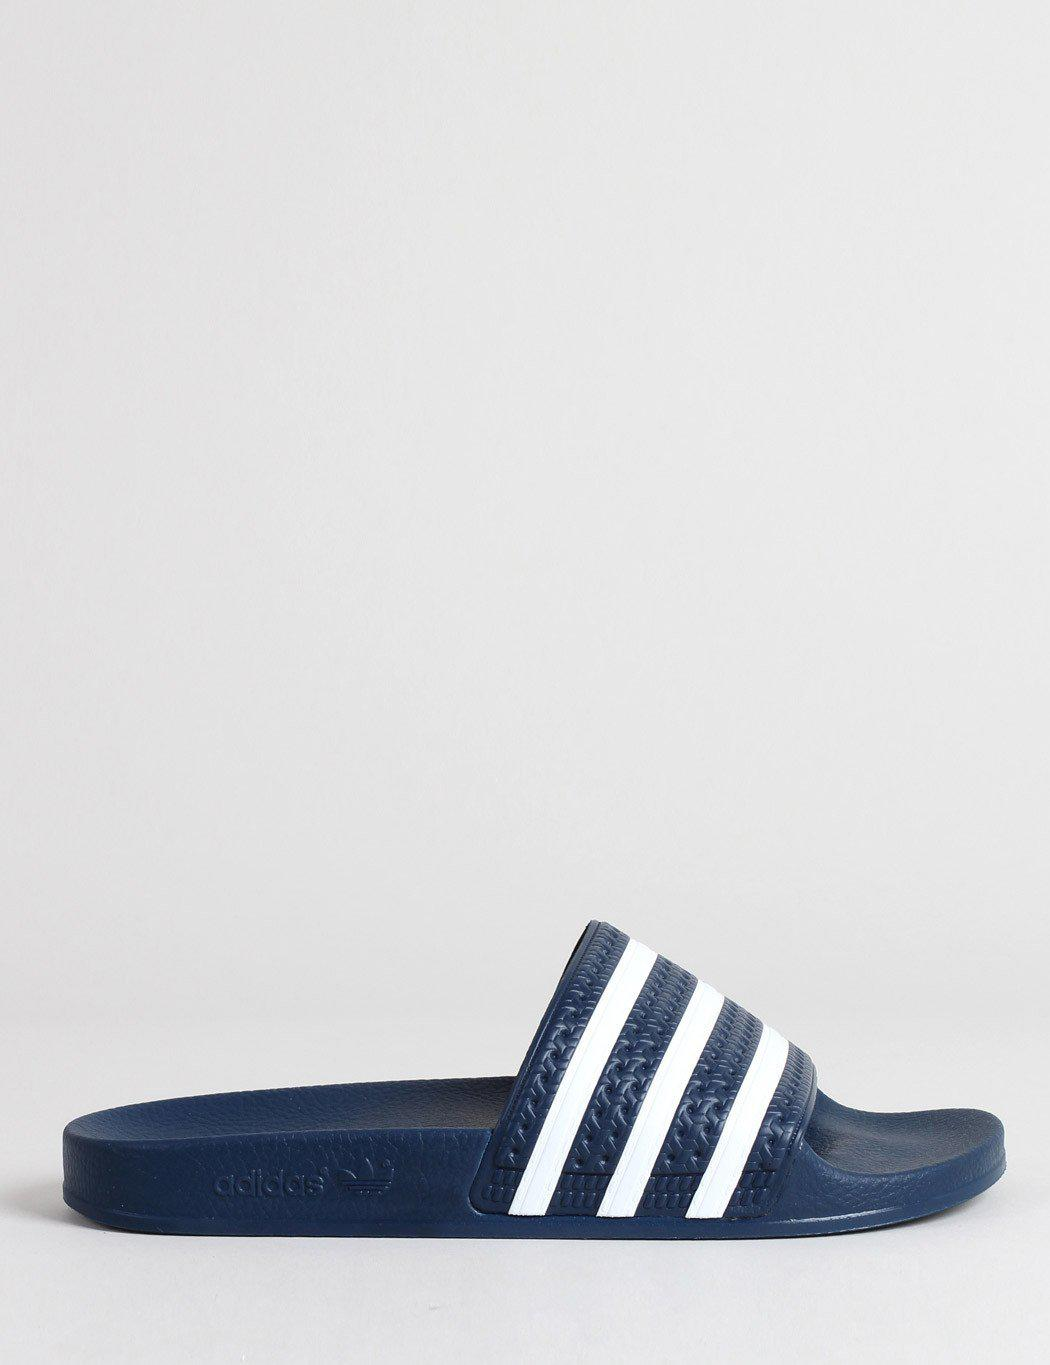 a7b7464beda6 adidas Originals Adidas Adilette Slides (288022) in Blue for Men ...